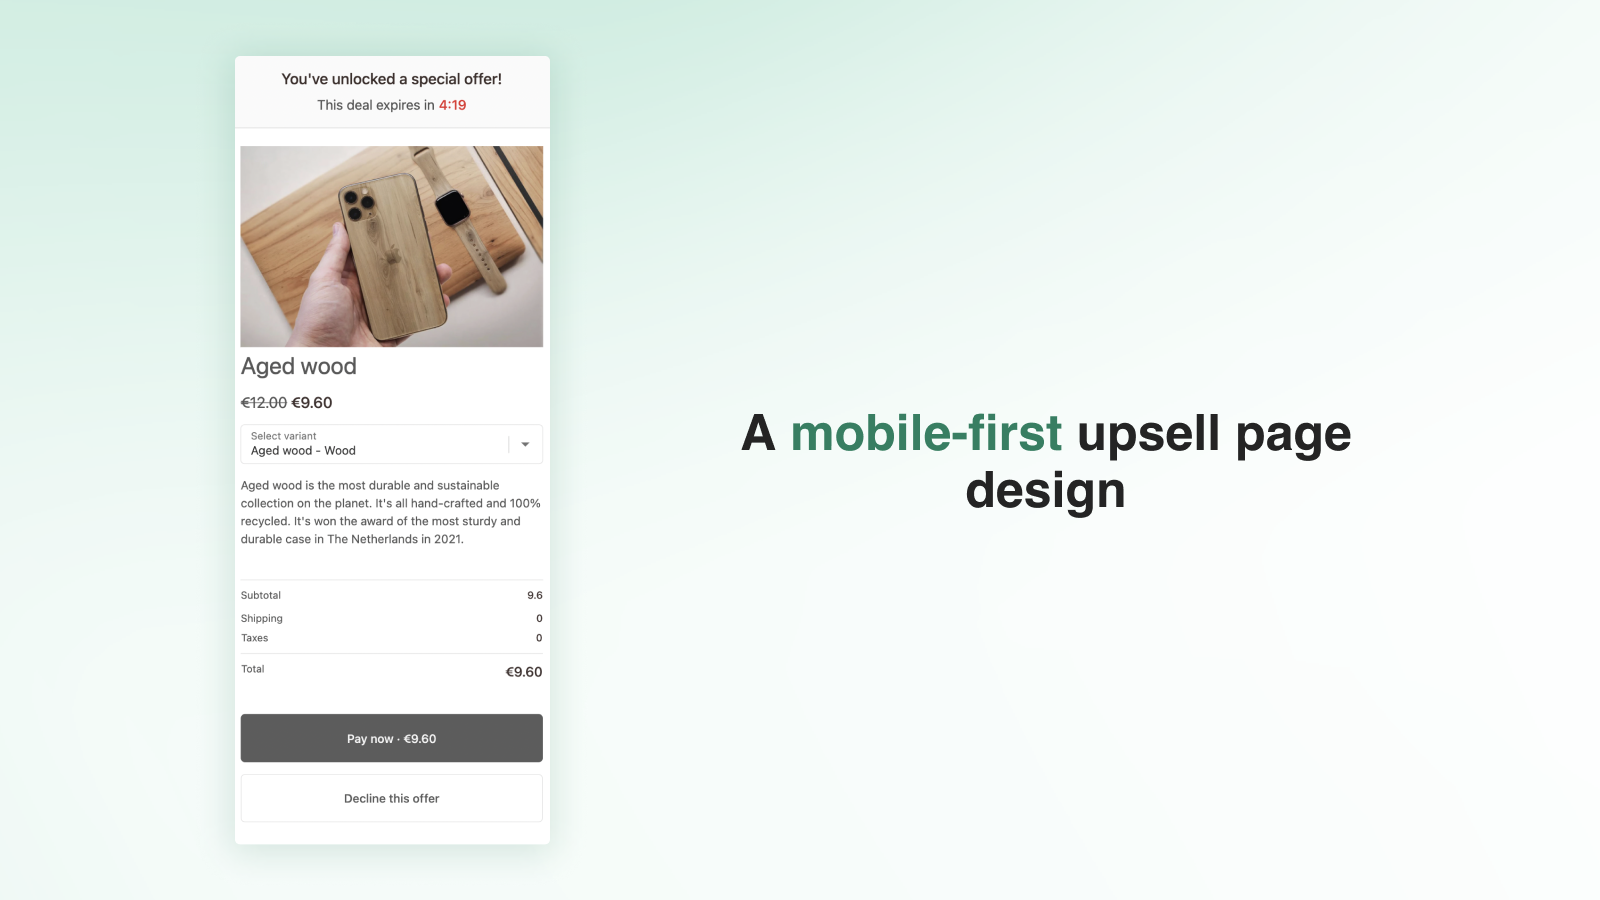 Mobile upsell page design